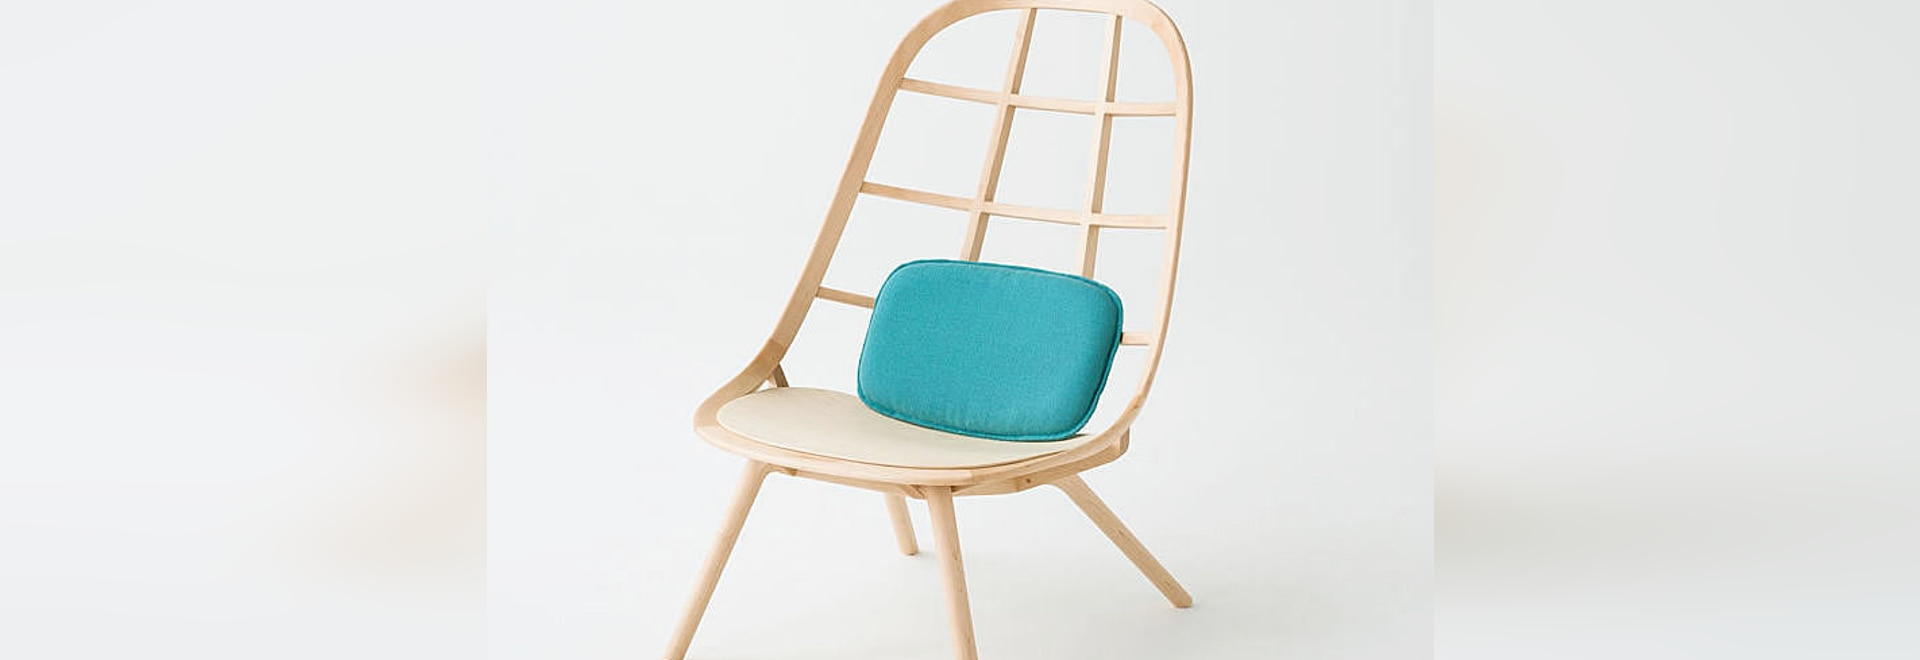 NEW: standard fireside chair by Meetee